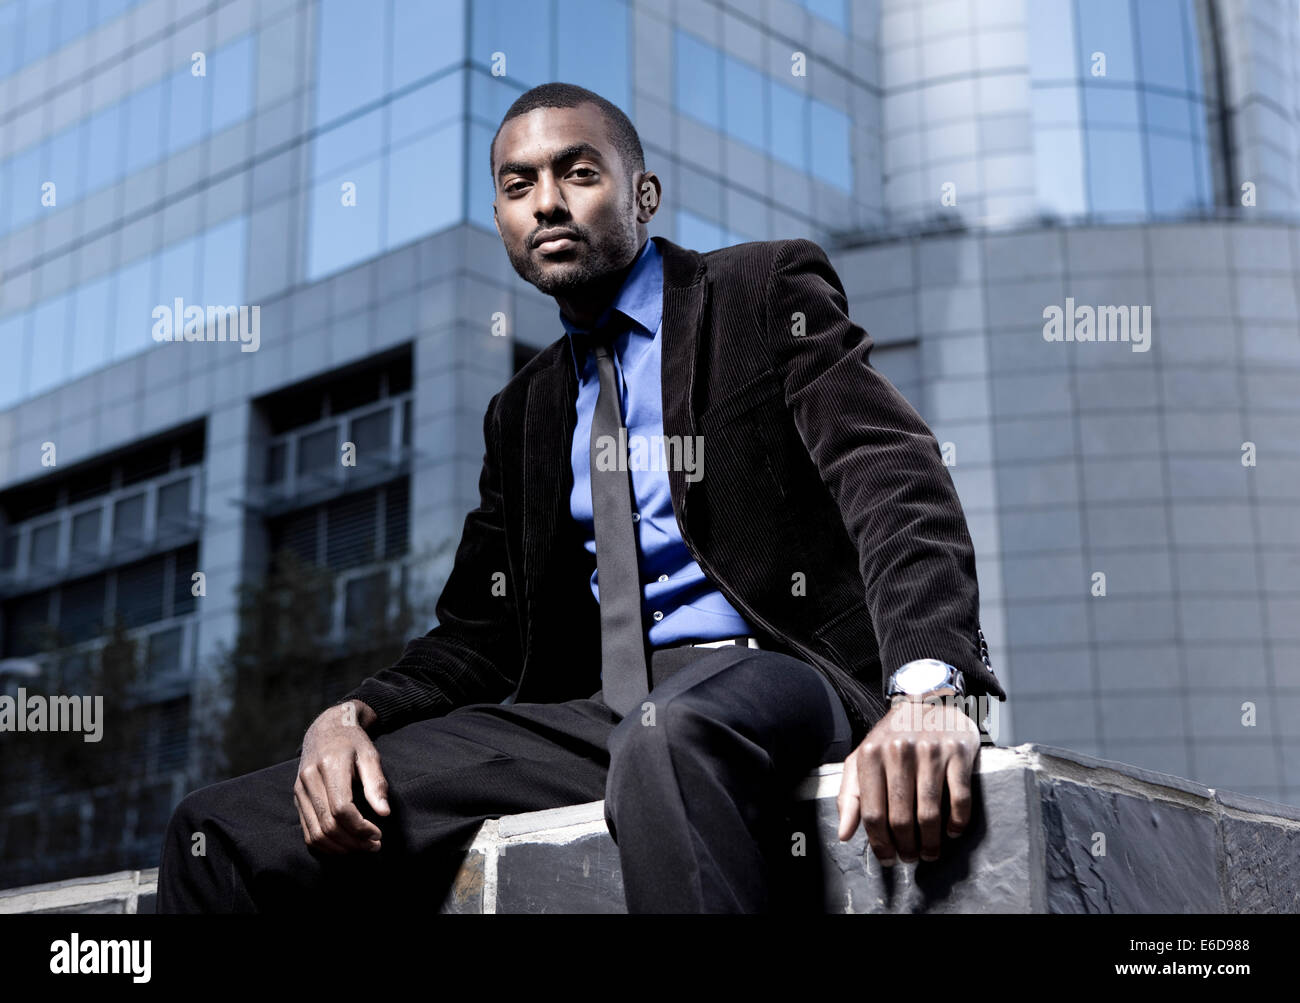 Southafrica, Young African Business Man Wearing Black Suit